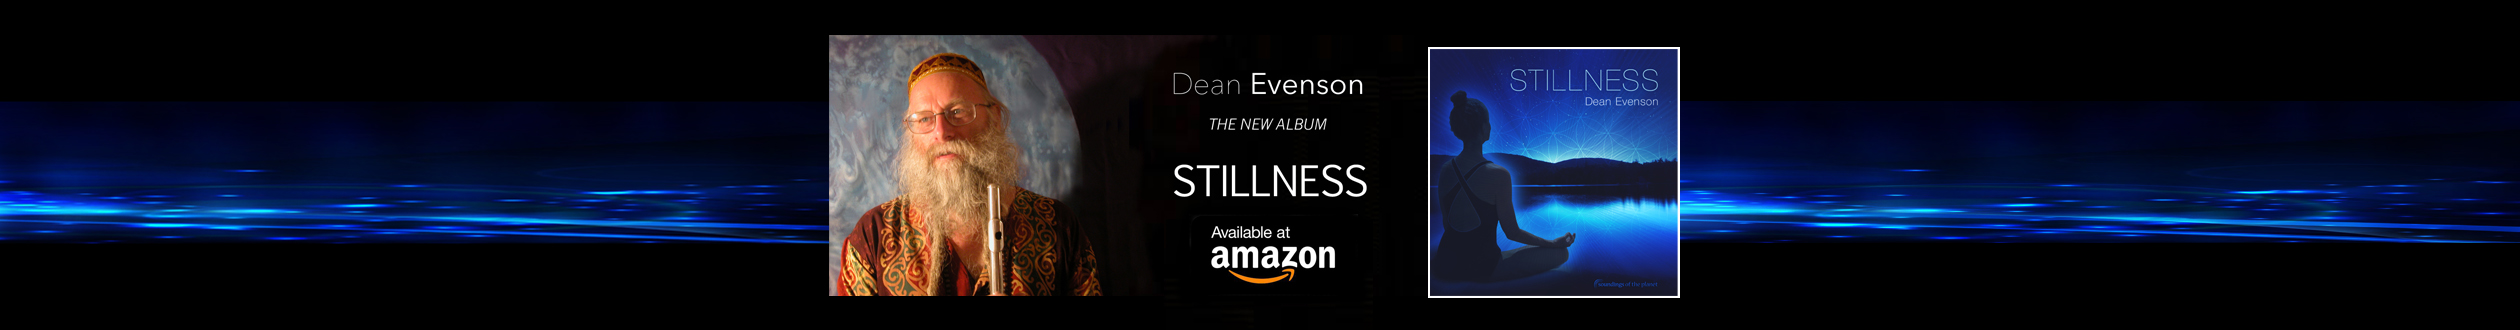 Announce-Stillness-Banner-Slider-Amazon_edited-1